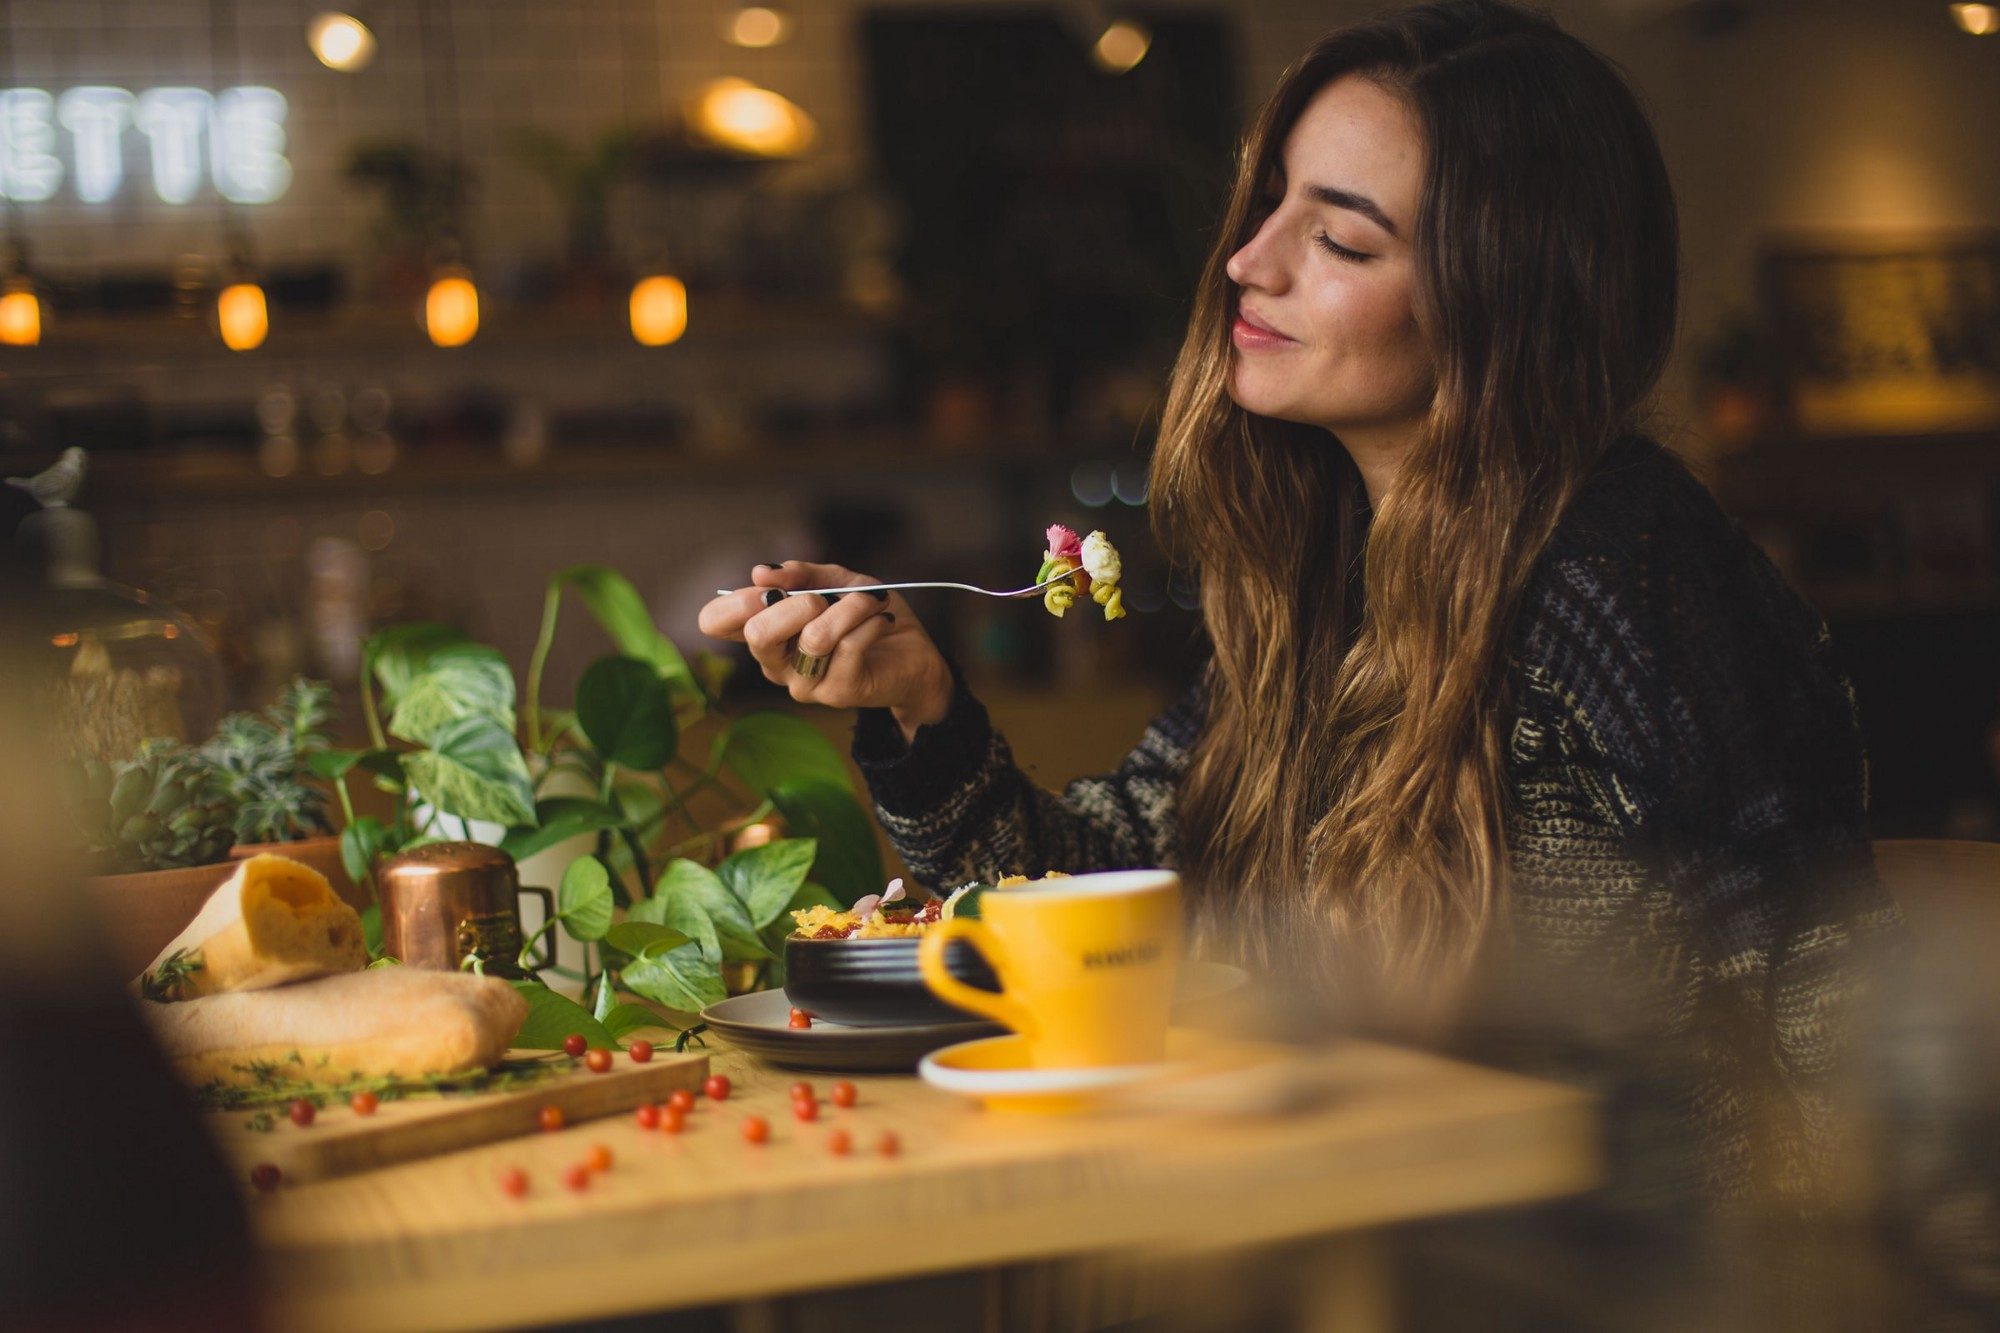 Woman holding a fork while enjoying a meal at the table